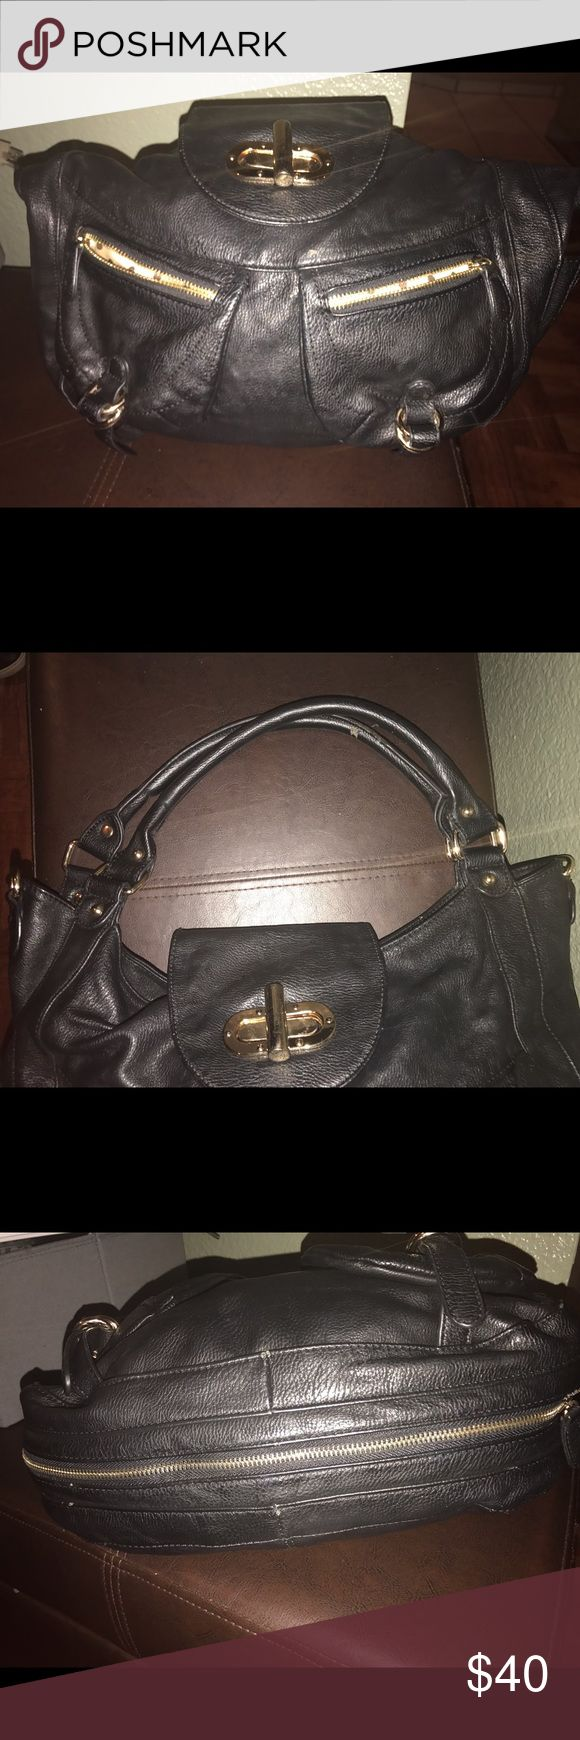 Melie Bianco purse Black nice purse over the shoulder super in the bottom does open and makes inside a little larger. Clean good material. Melie Bianco Bags Shoulder Bags